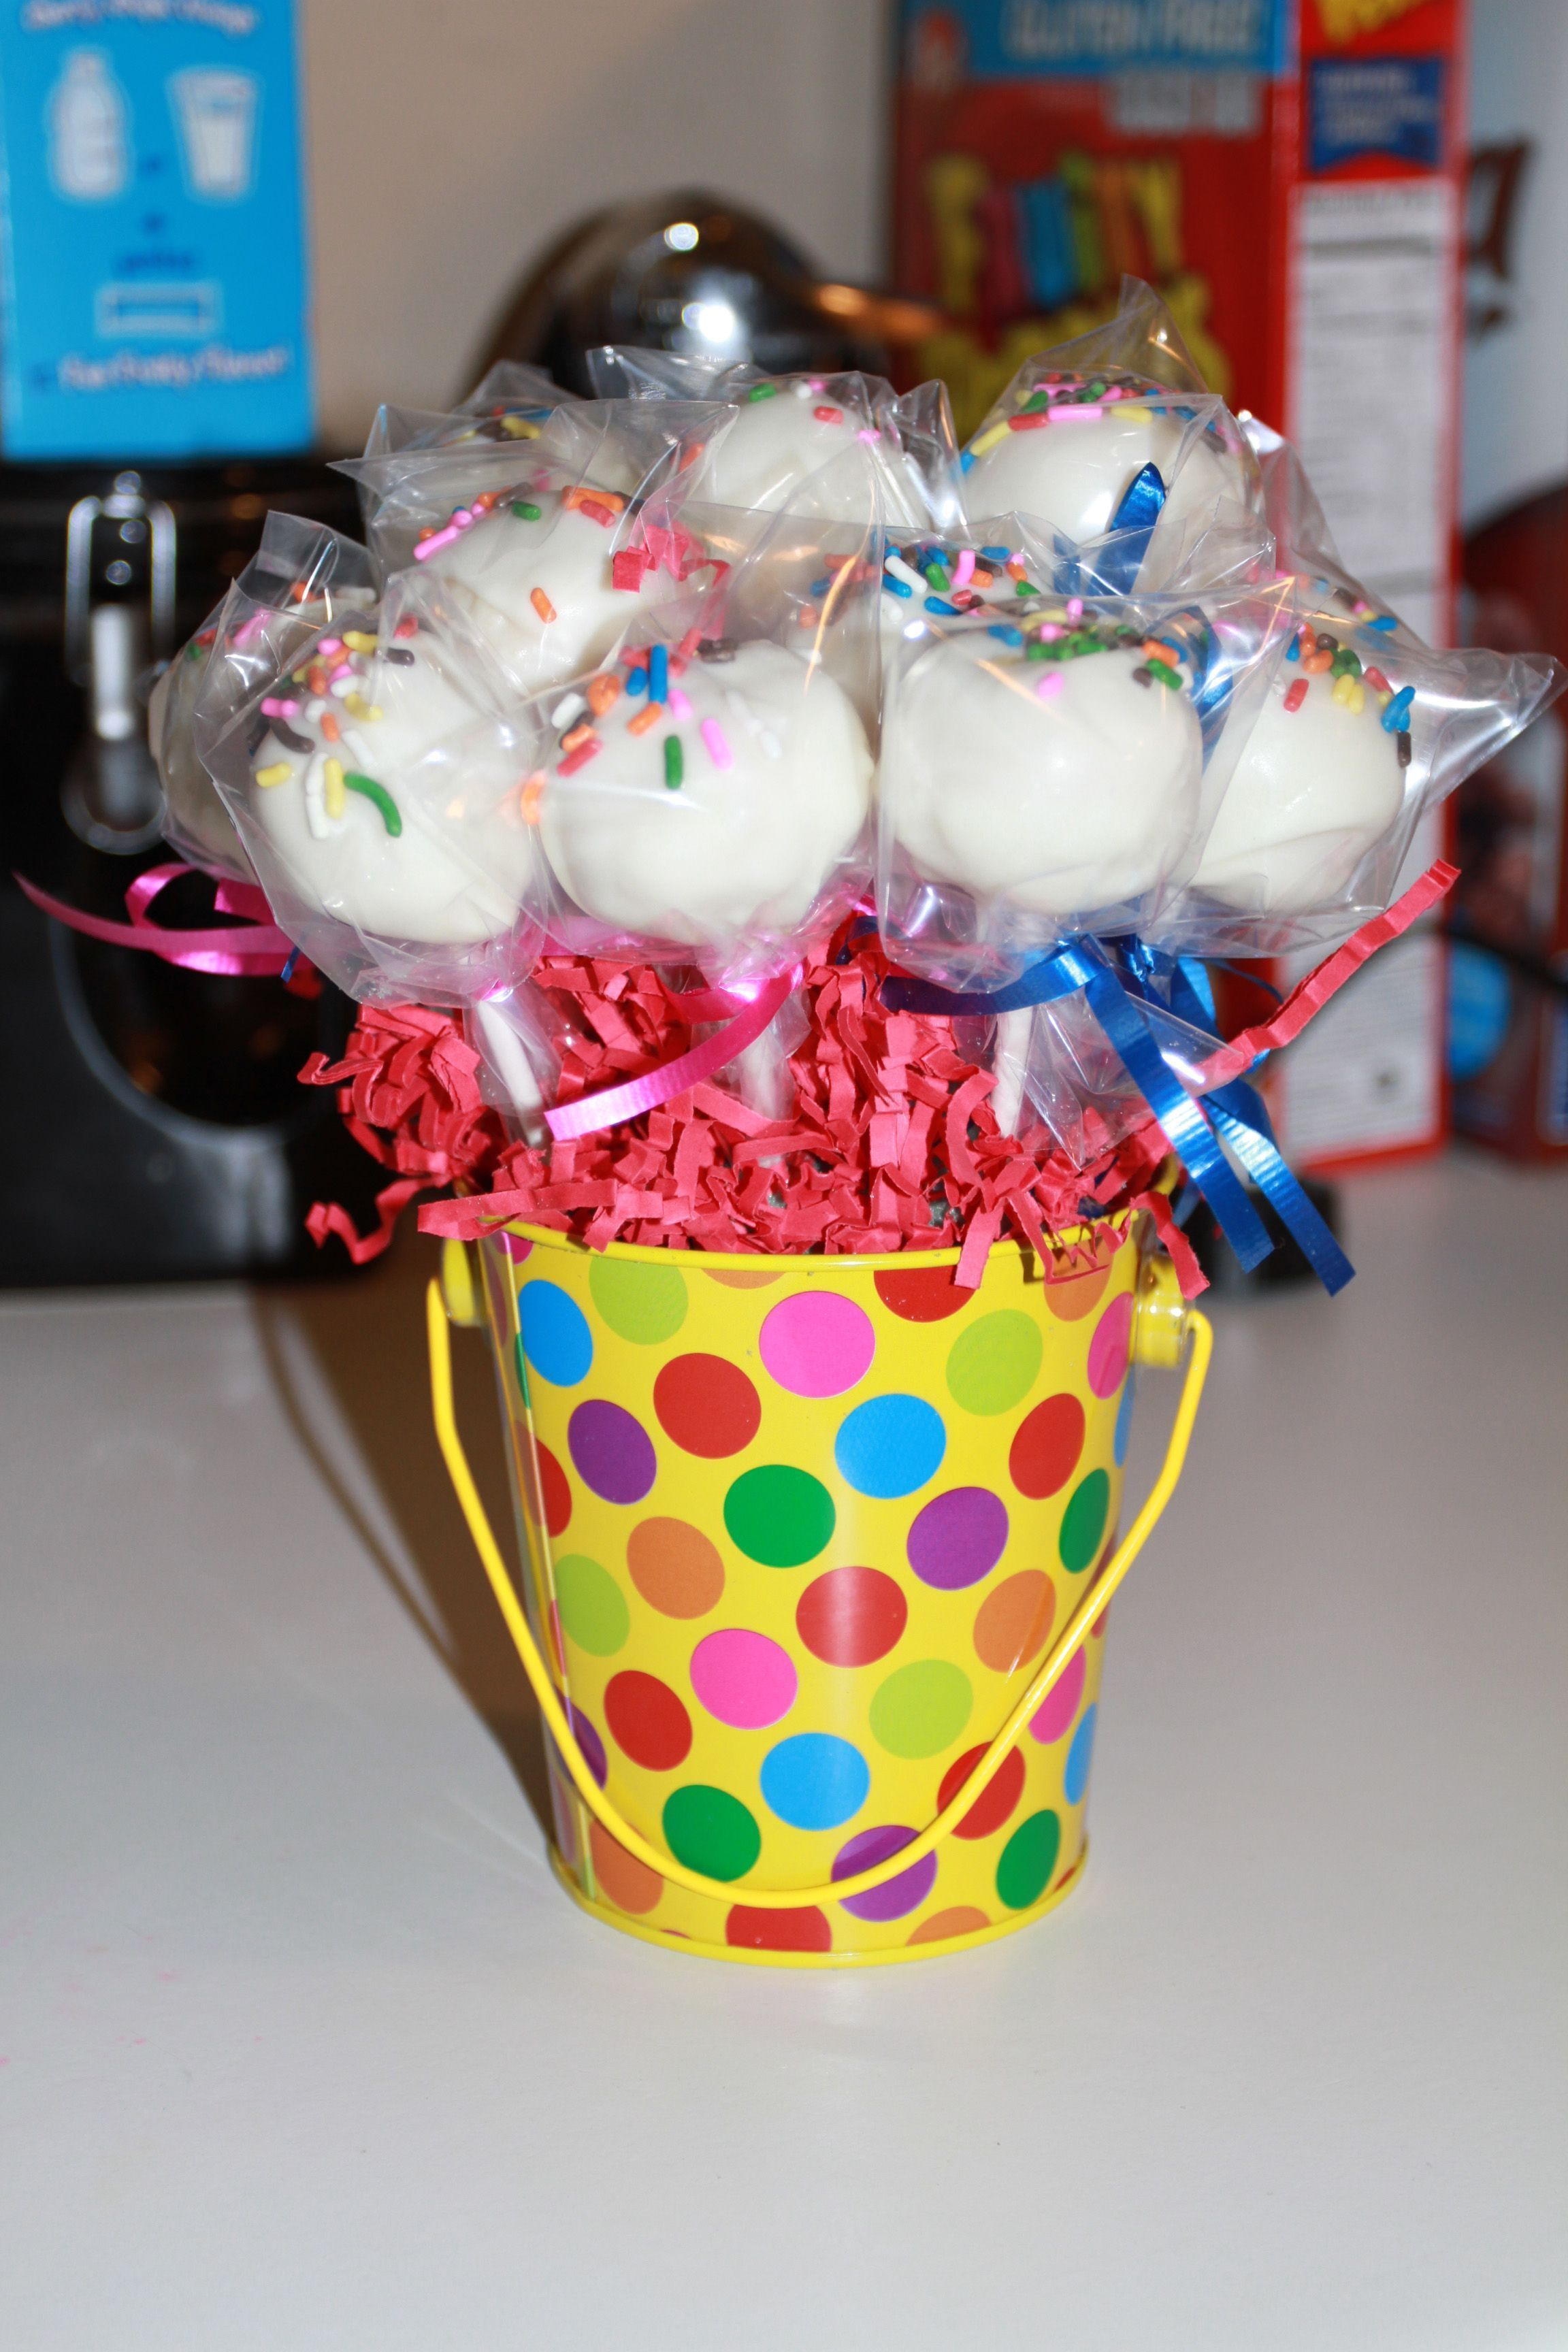 Cake Pop Bouquet for my Mother's Birthday! #cakepopbouquet Cake Pop Bouquet for my Mother's Birthday! #cakepopbouquet Cake Pop Bouquet for my Mother's Birthday! #cakepopbouquet Cake Pop Bouquet for my Mother's Birthday! #cakepopbouquet Cake Pop Bouquet for my Mother's Birthday! #cakepopbouquet Cake Pop Bouquet for my Mother's Birthday! #cakepopbouquet Cake Pop Bouquet for my Mother's Birthday! #cakepopbouquet Cake Pop Bouquet for my Mother's Birthday! #cakepopbouquet